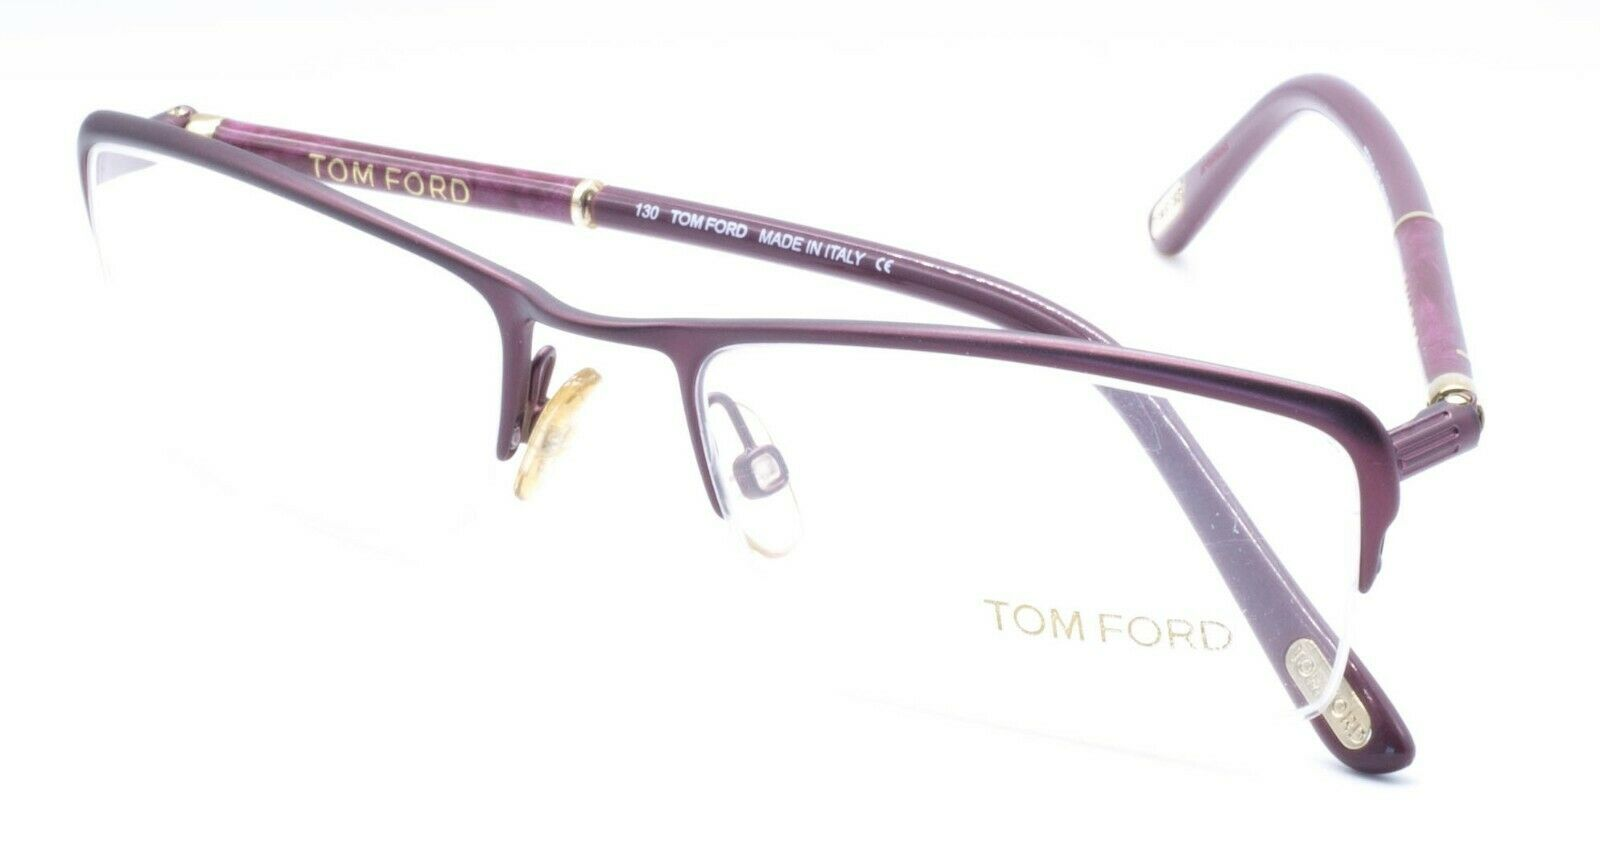 TOM FORD TF 5049 315 52mm Eyewear FRAMES RX Optical Eyeglasses Glasses New Italy